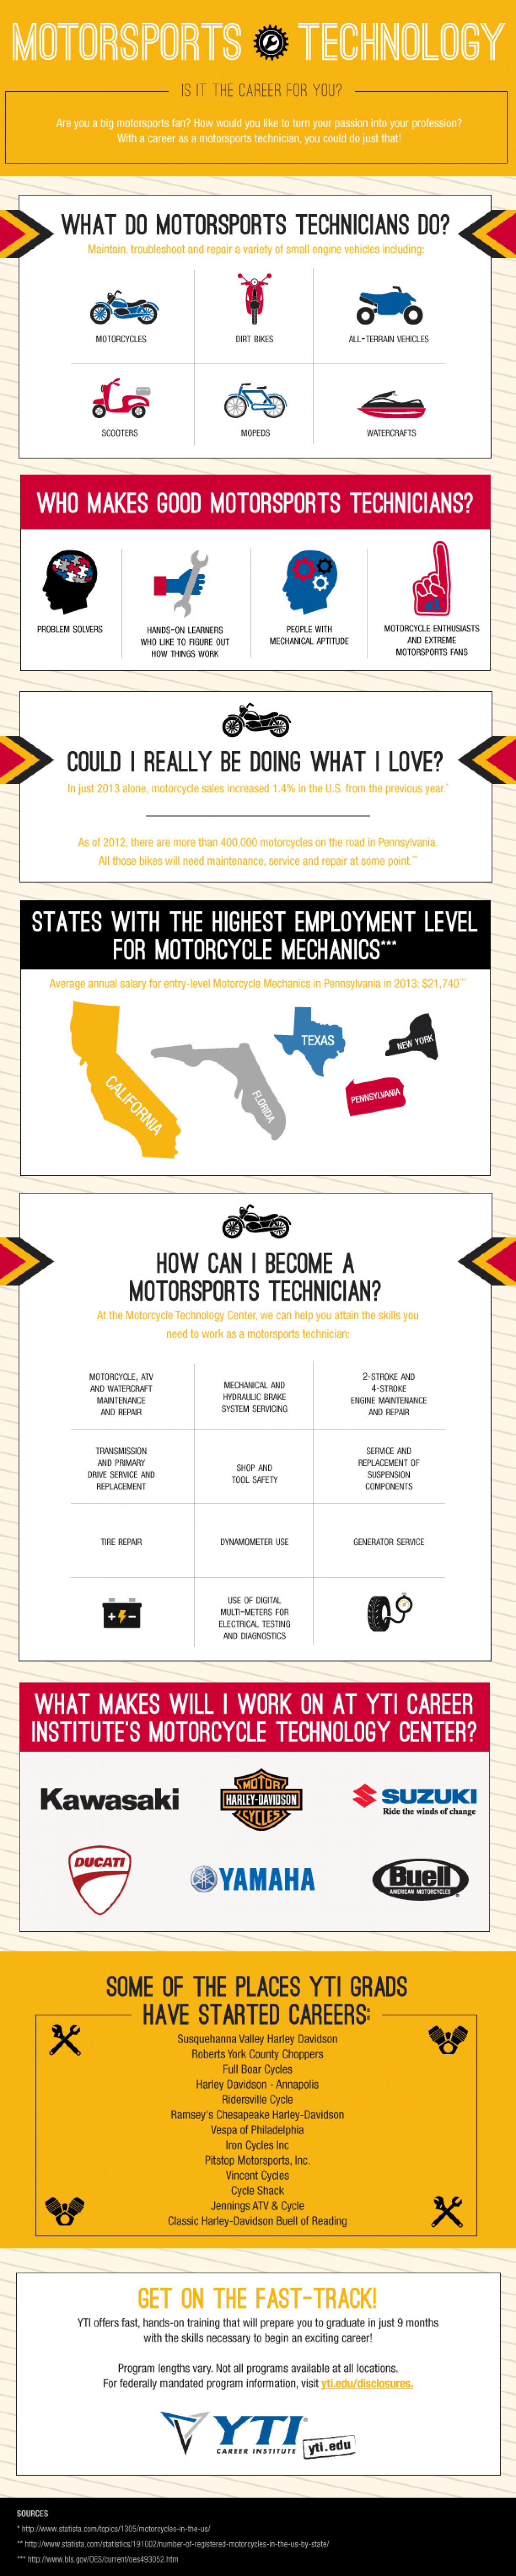 MOTORSPORTS TECHNOLOGY Infographic